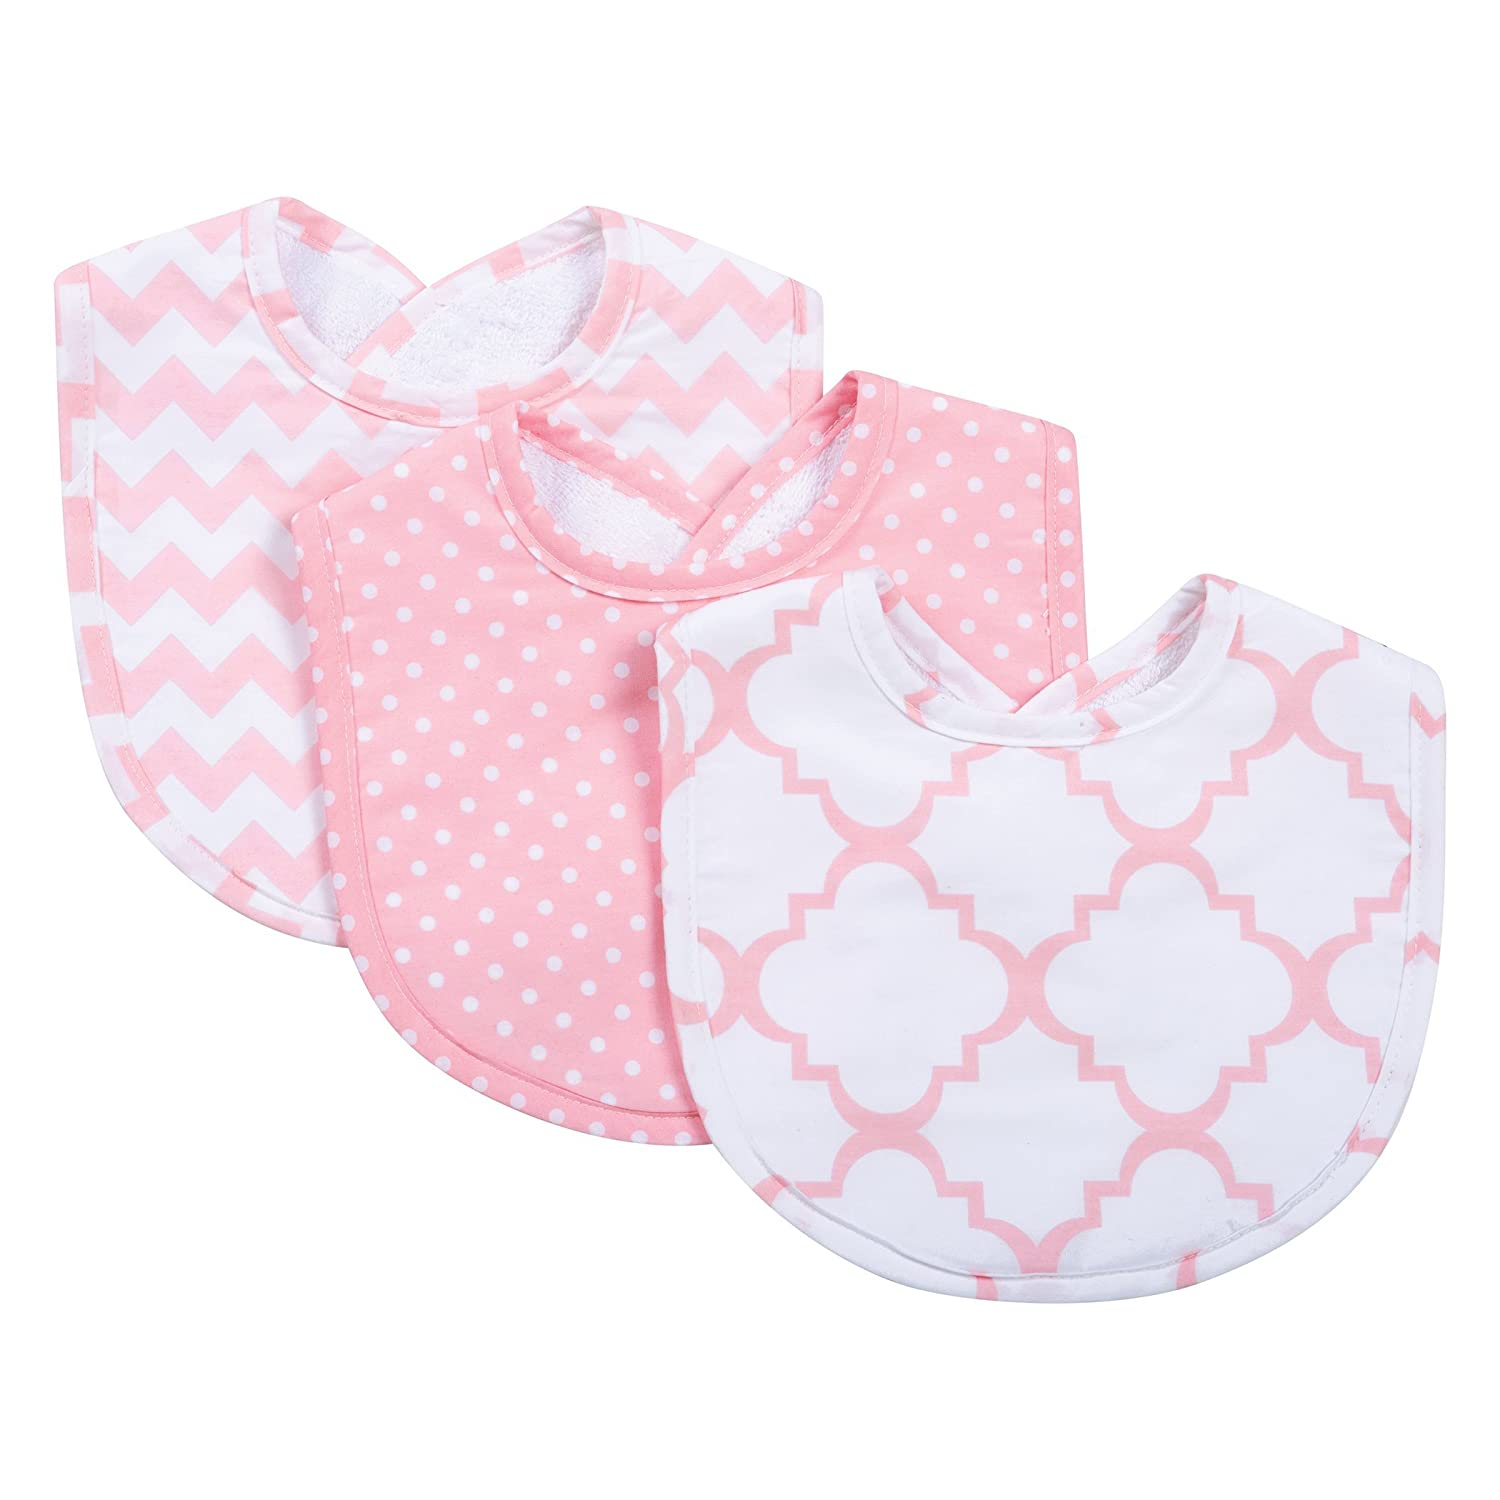 Trend Lab 3-Pack Bib Set, Pink Sky 102698